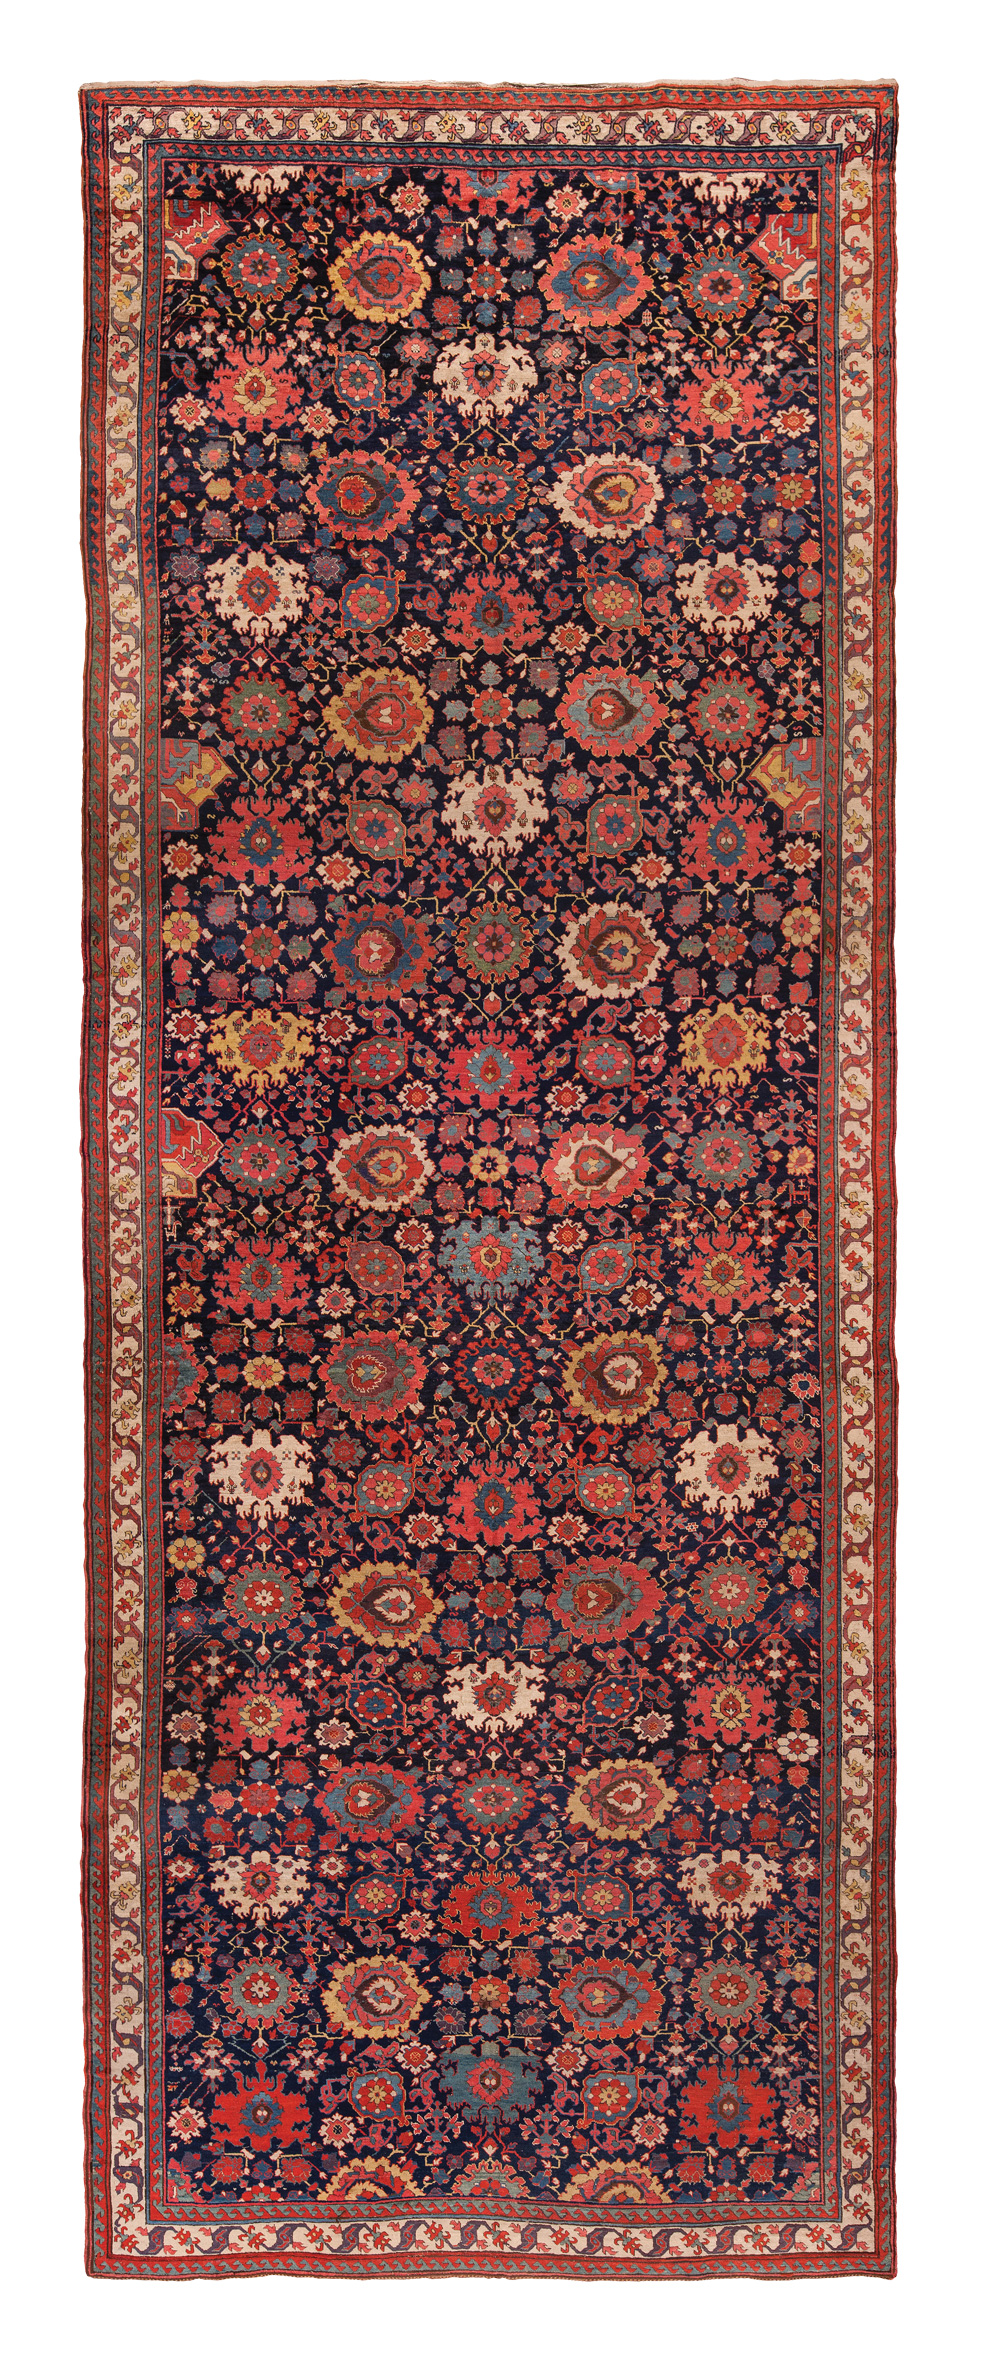 """North-west Persian harshang carpet, 18th century. 2.77 x 7.09 m (9' 1"""" x 23' 3"""")"""